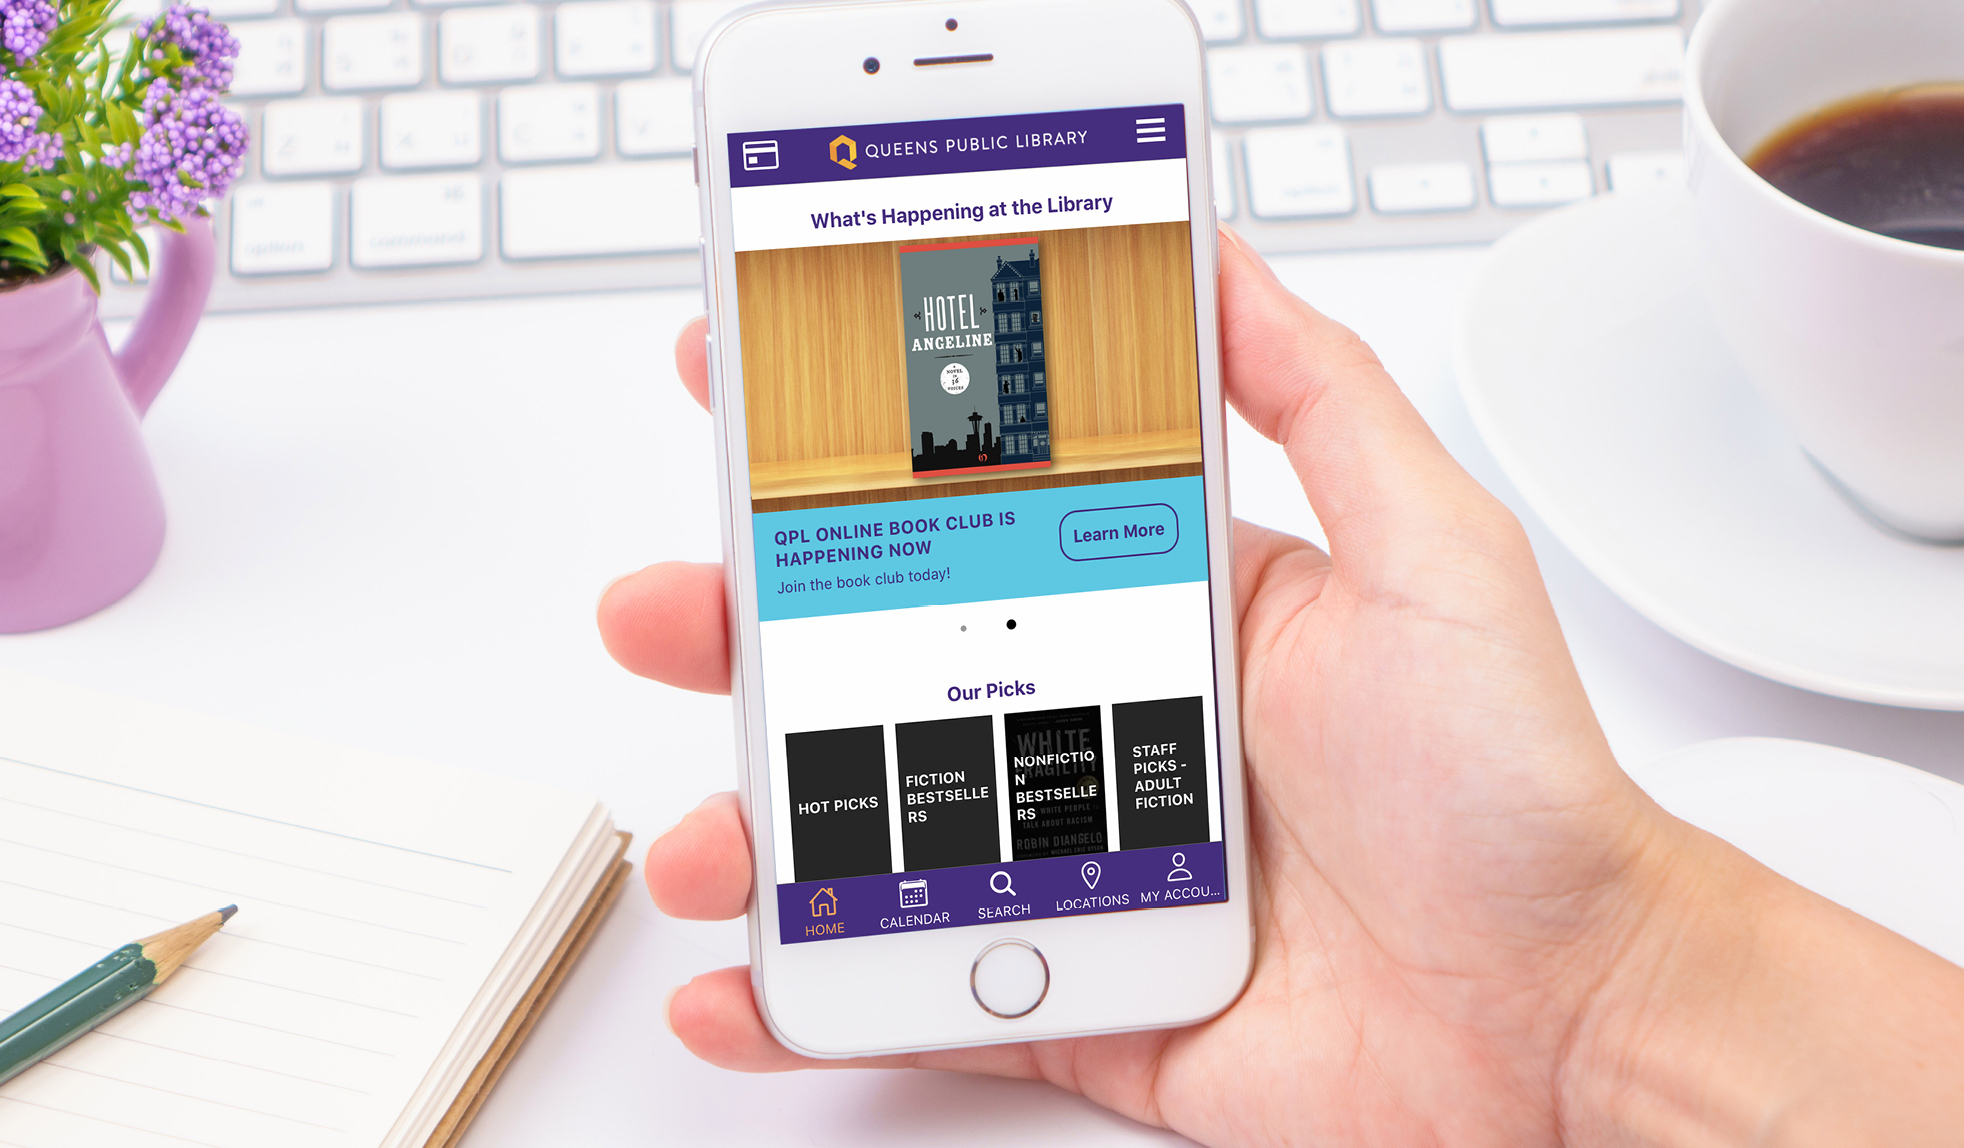 Our redesigned mobile app allows you to listen to, watch, and read content in the app.